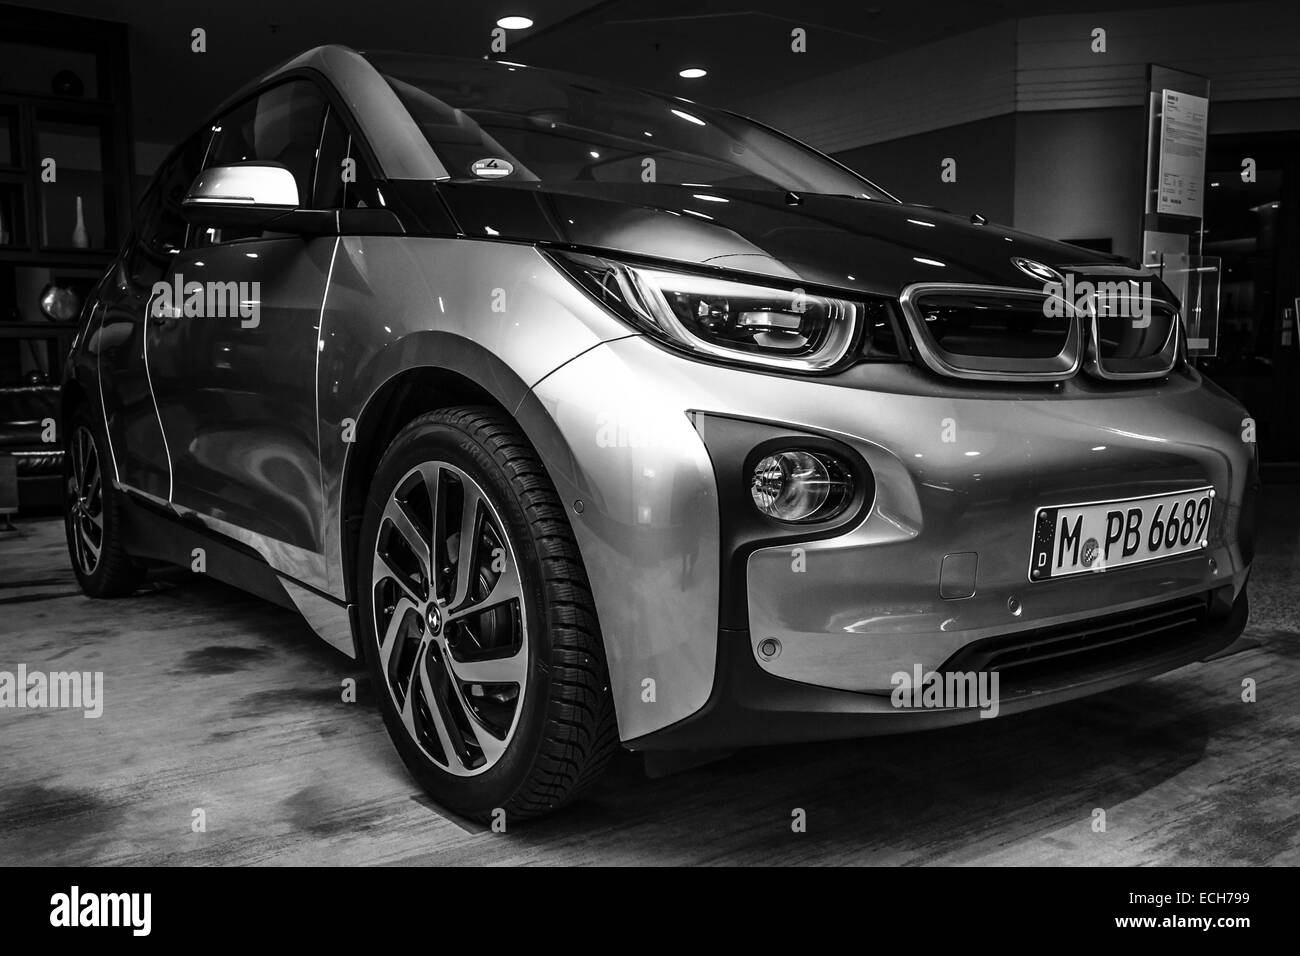 Showroom. BMW i3 - Stock Image